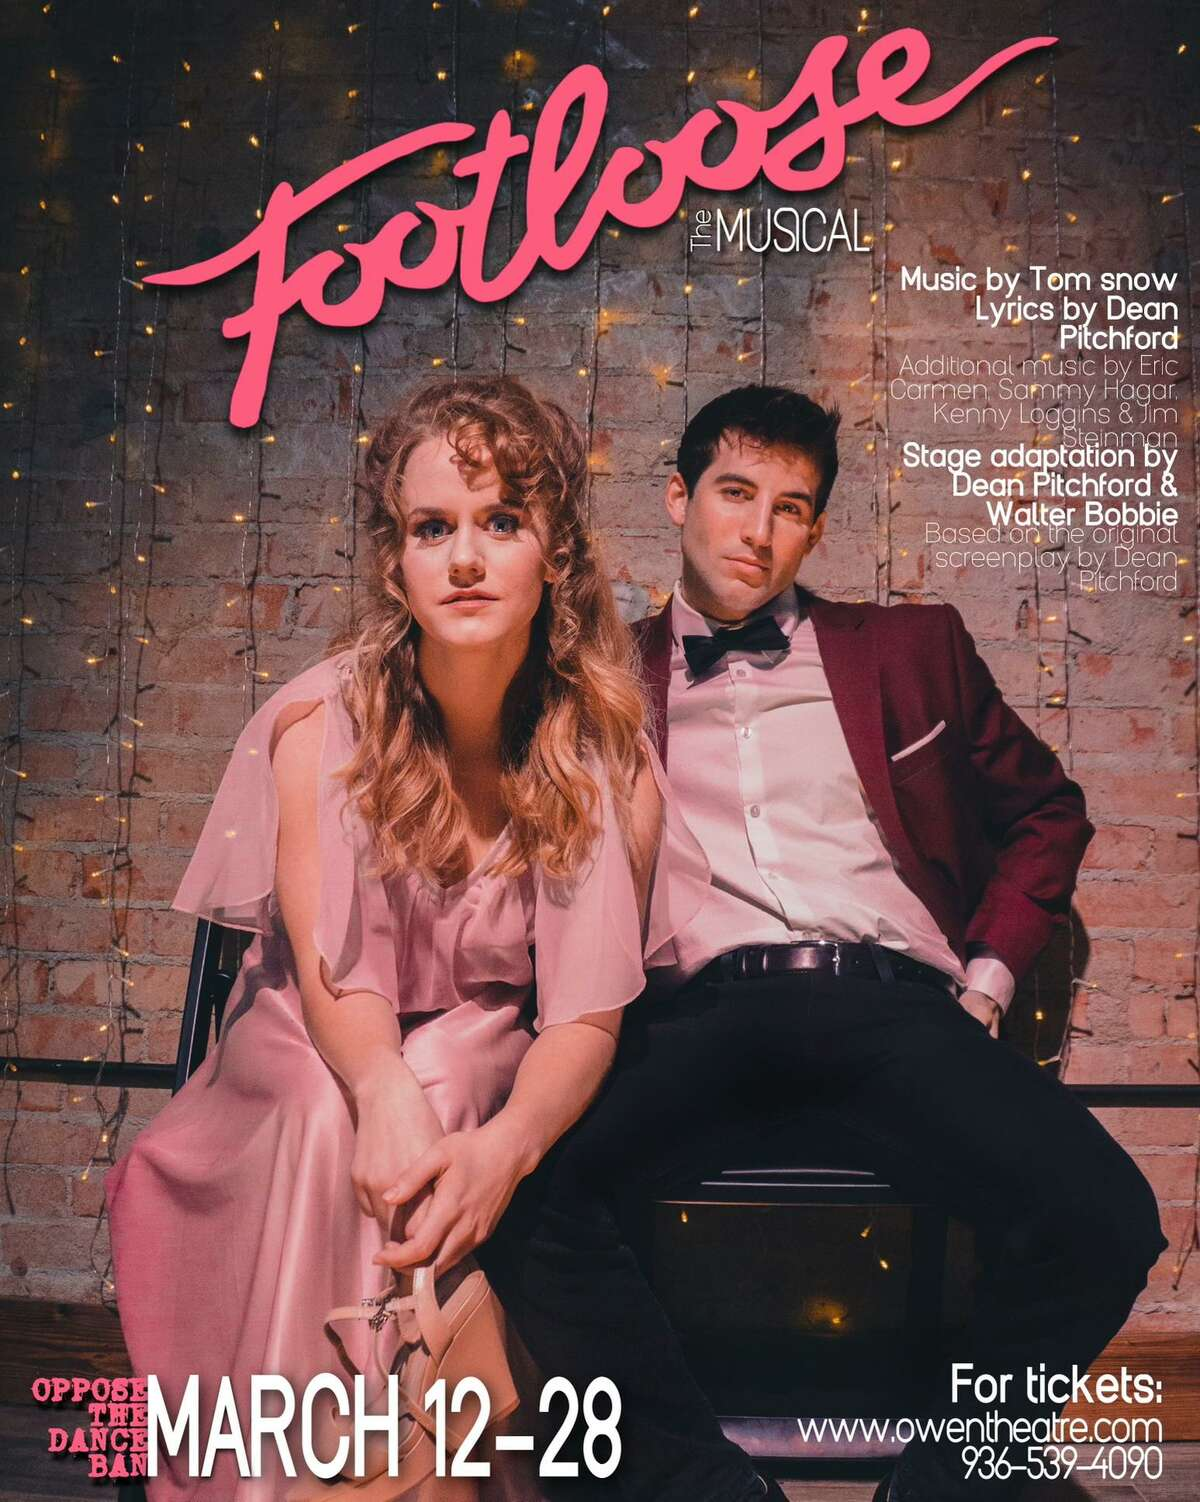 """The Players Theatre Company presents """"Footloose"""" March 12-28 at the Owen Theatre in downtown Conroe. Call 936-539-4090 or visit www.owentheatre.com."""